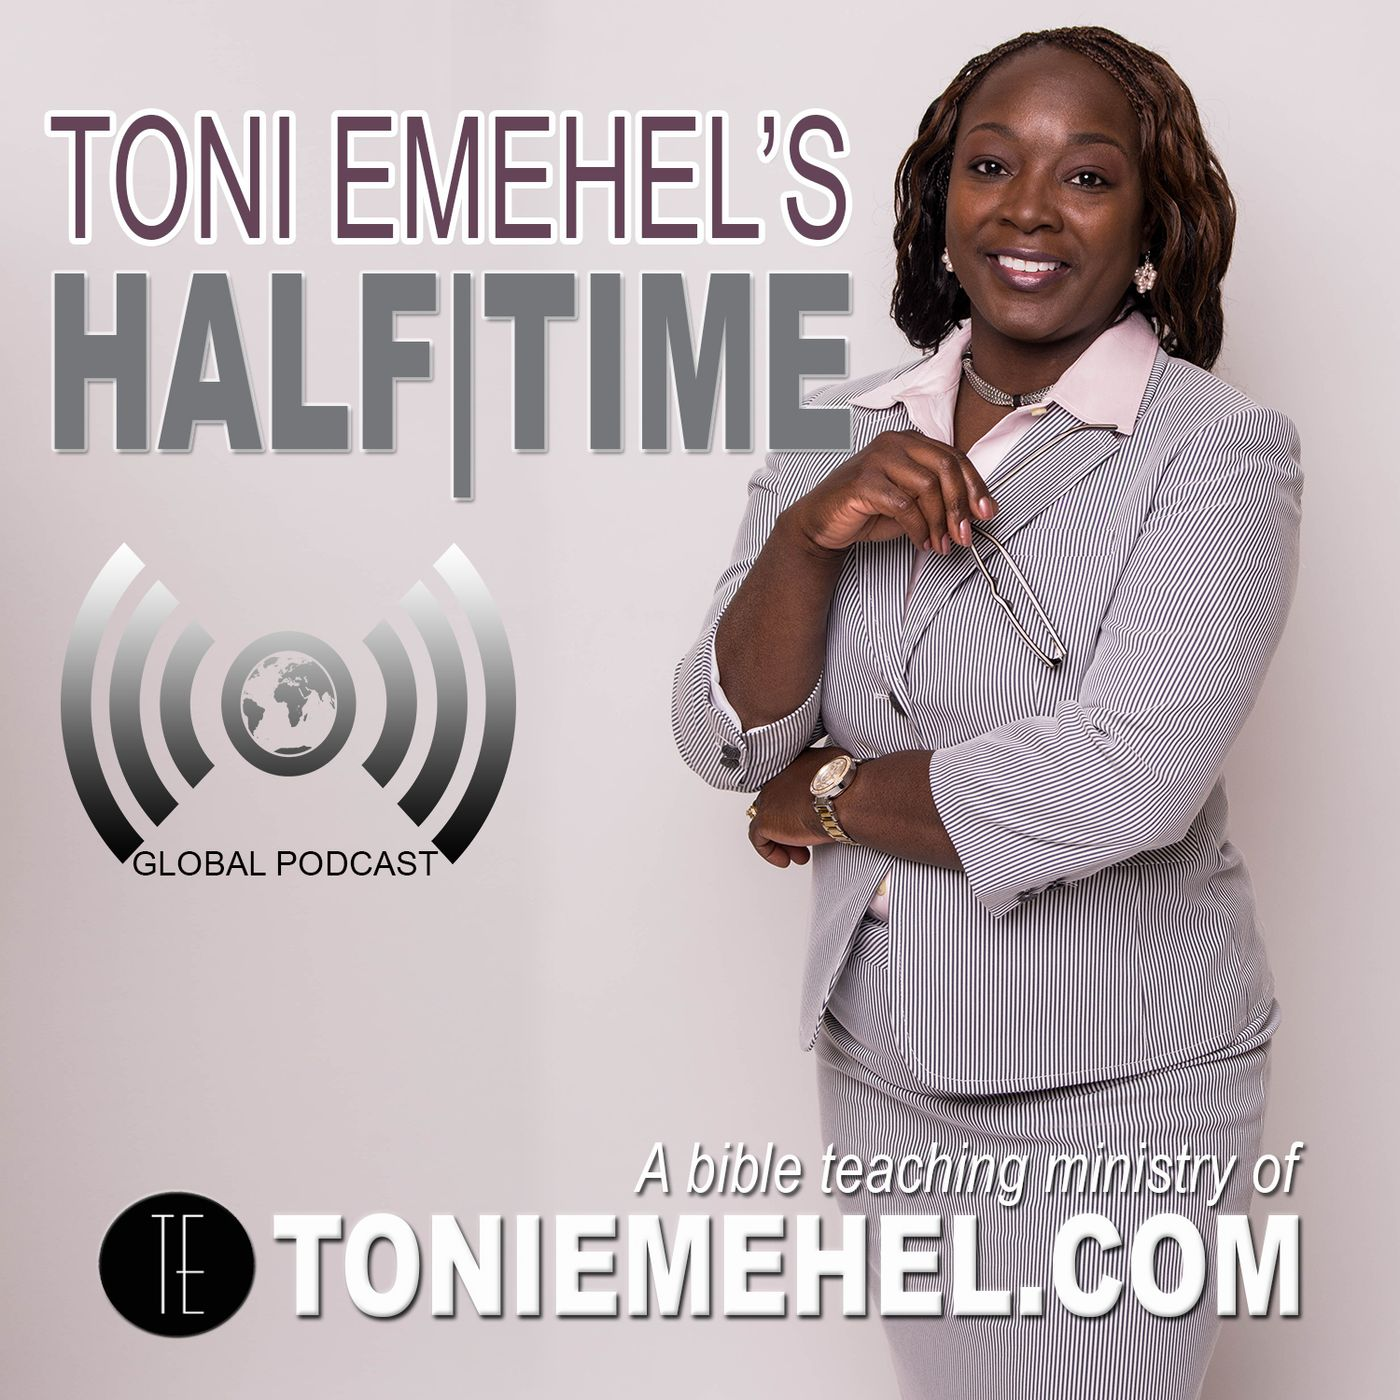 Halftime with Toni Emehel